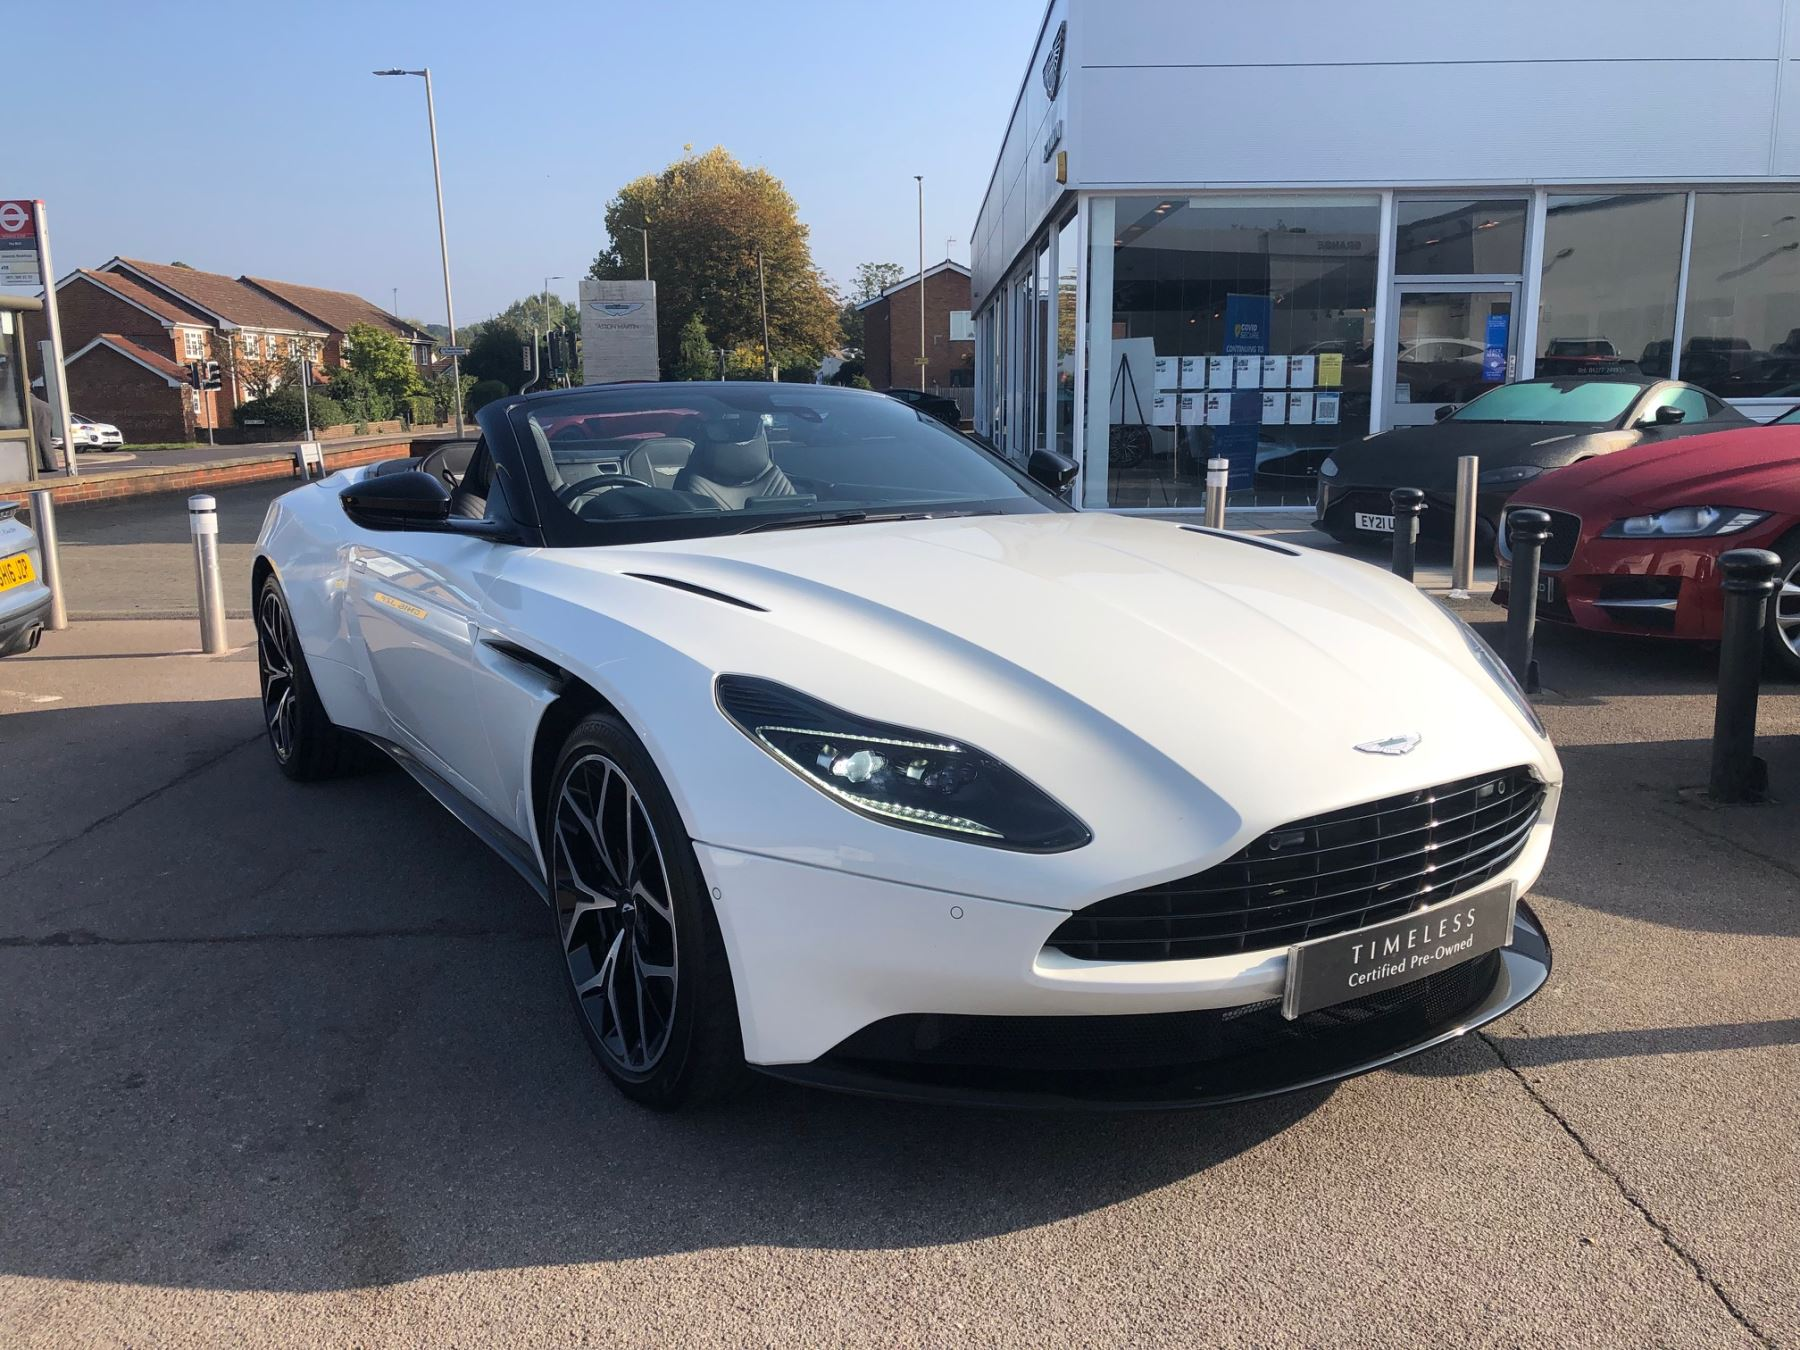 Aston Martin DB11 V8 Volante 2dr Touchtronic Balance of 5 Year Free Service Pack  4.0 Automatic Convertible